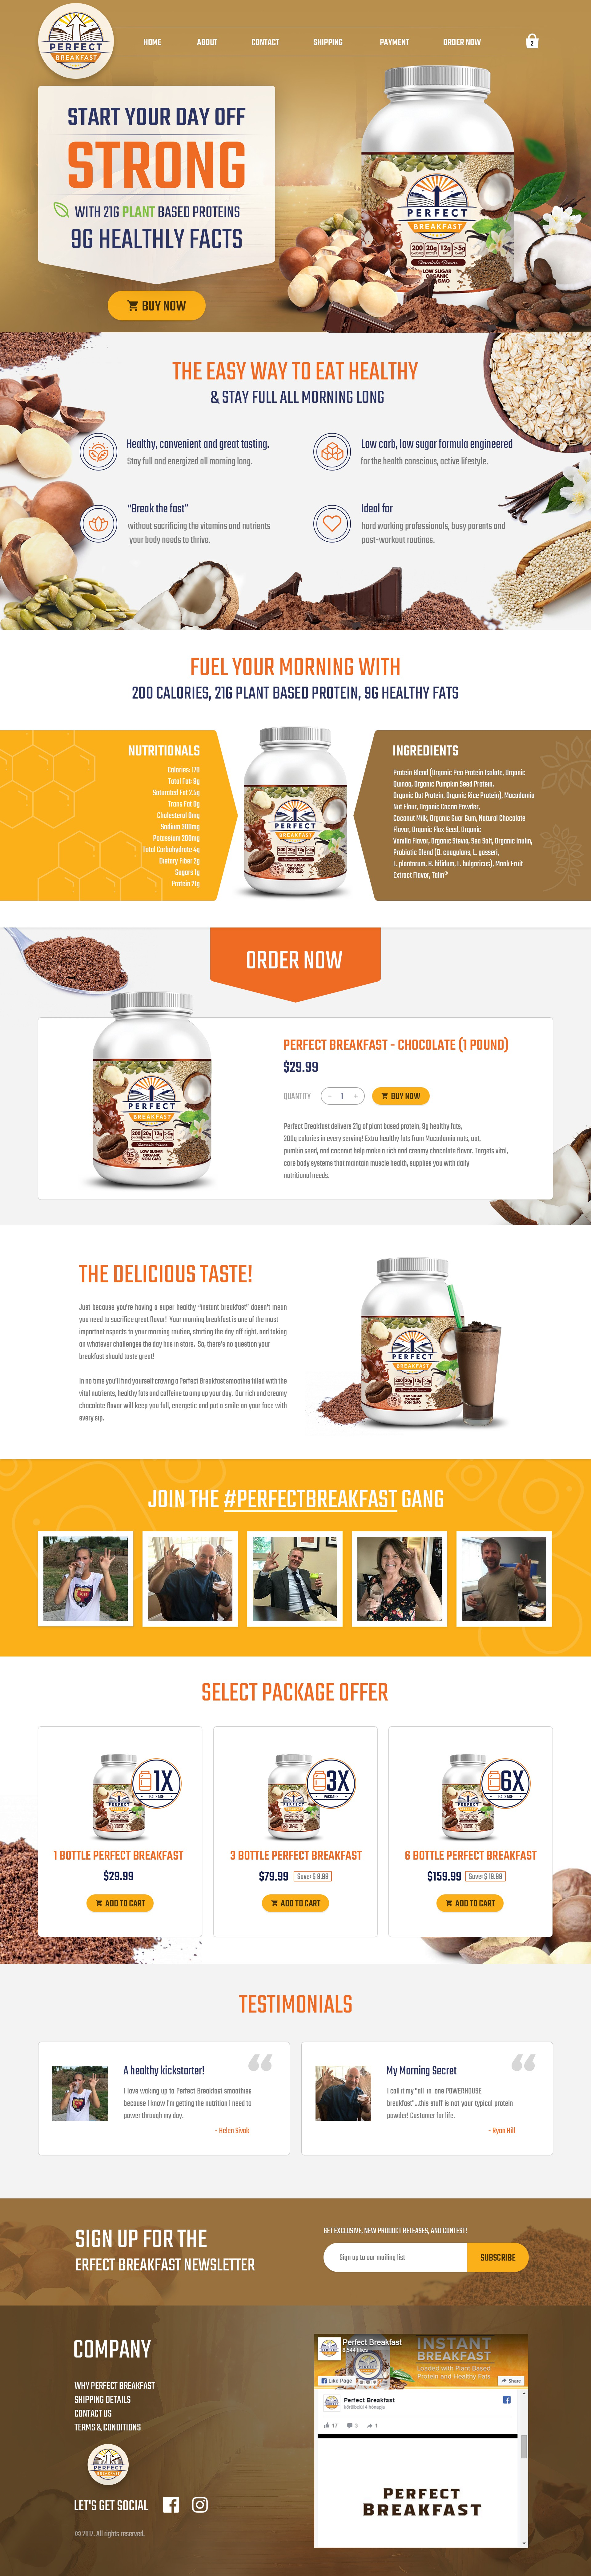 Website redesign around new packaging and logo